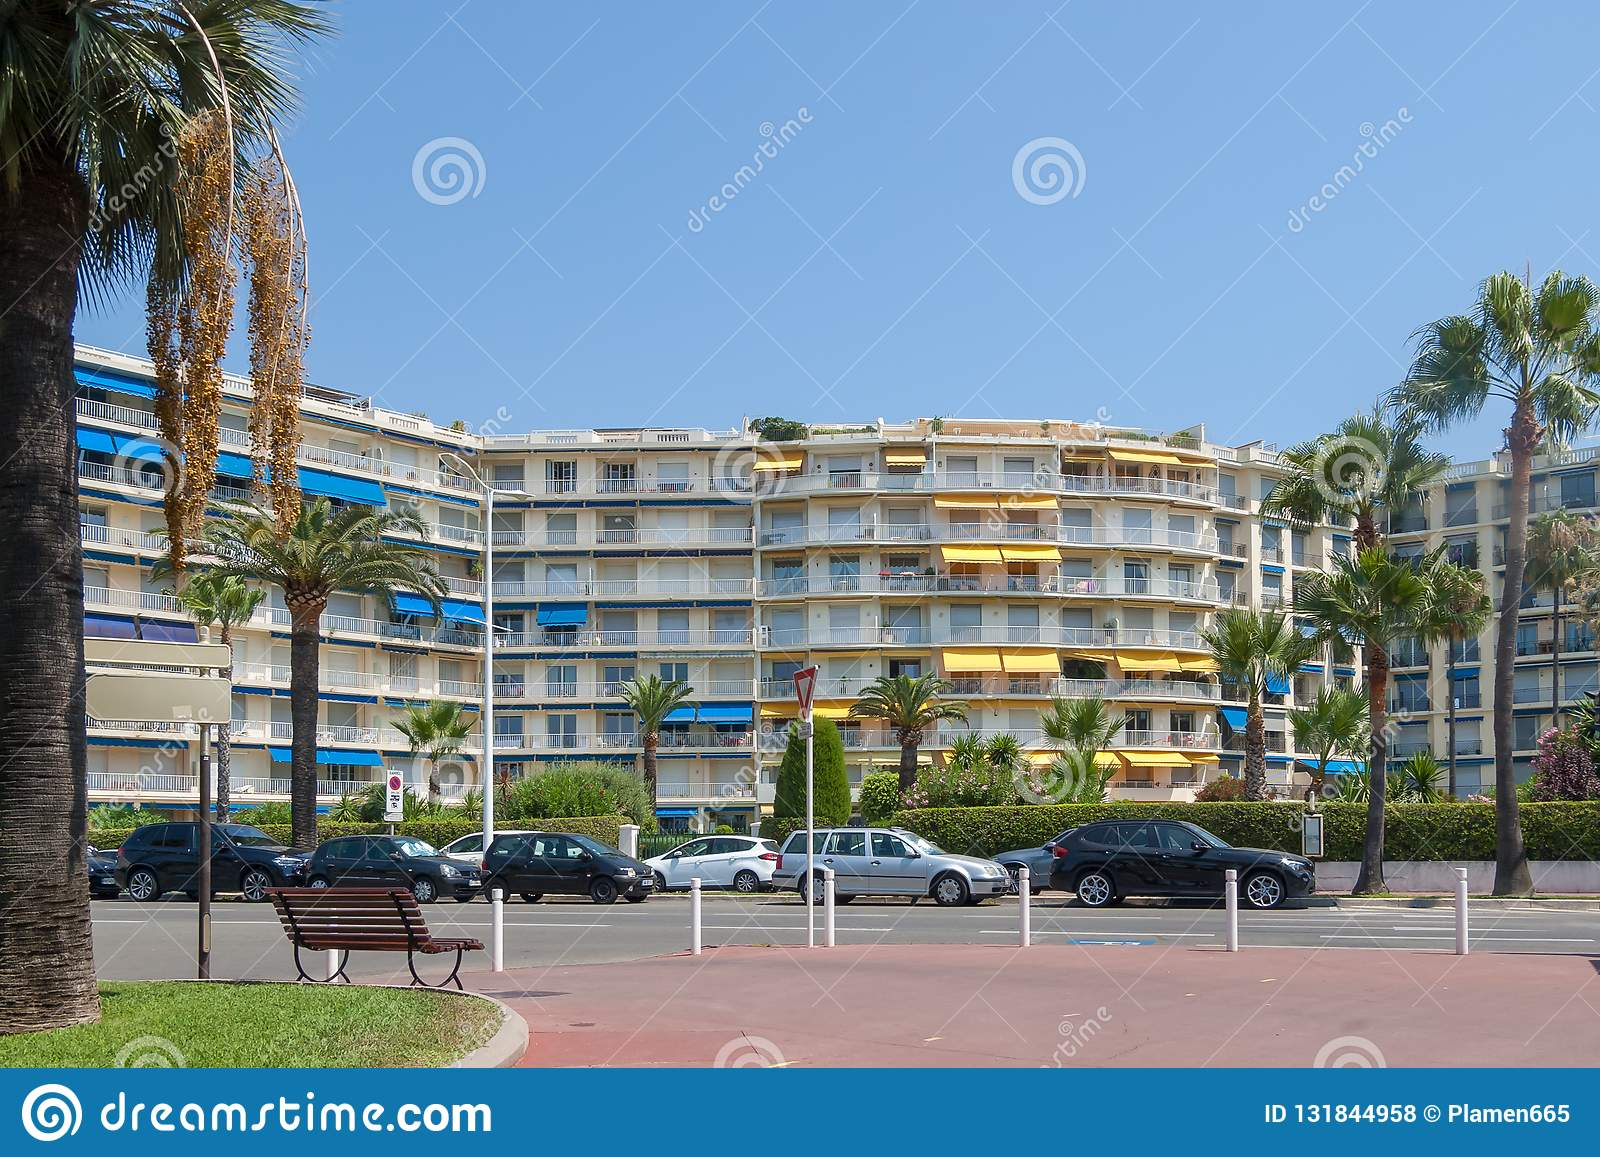 Residential building with palm trees, Cannes ,France.